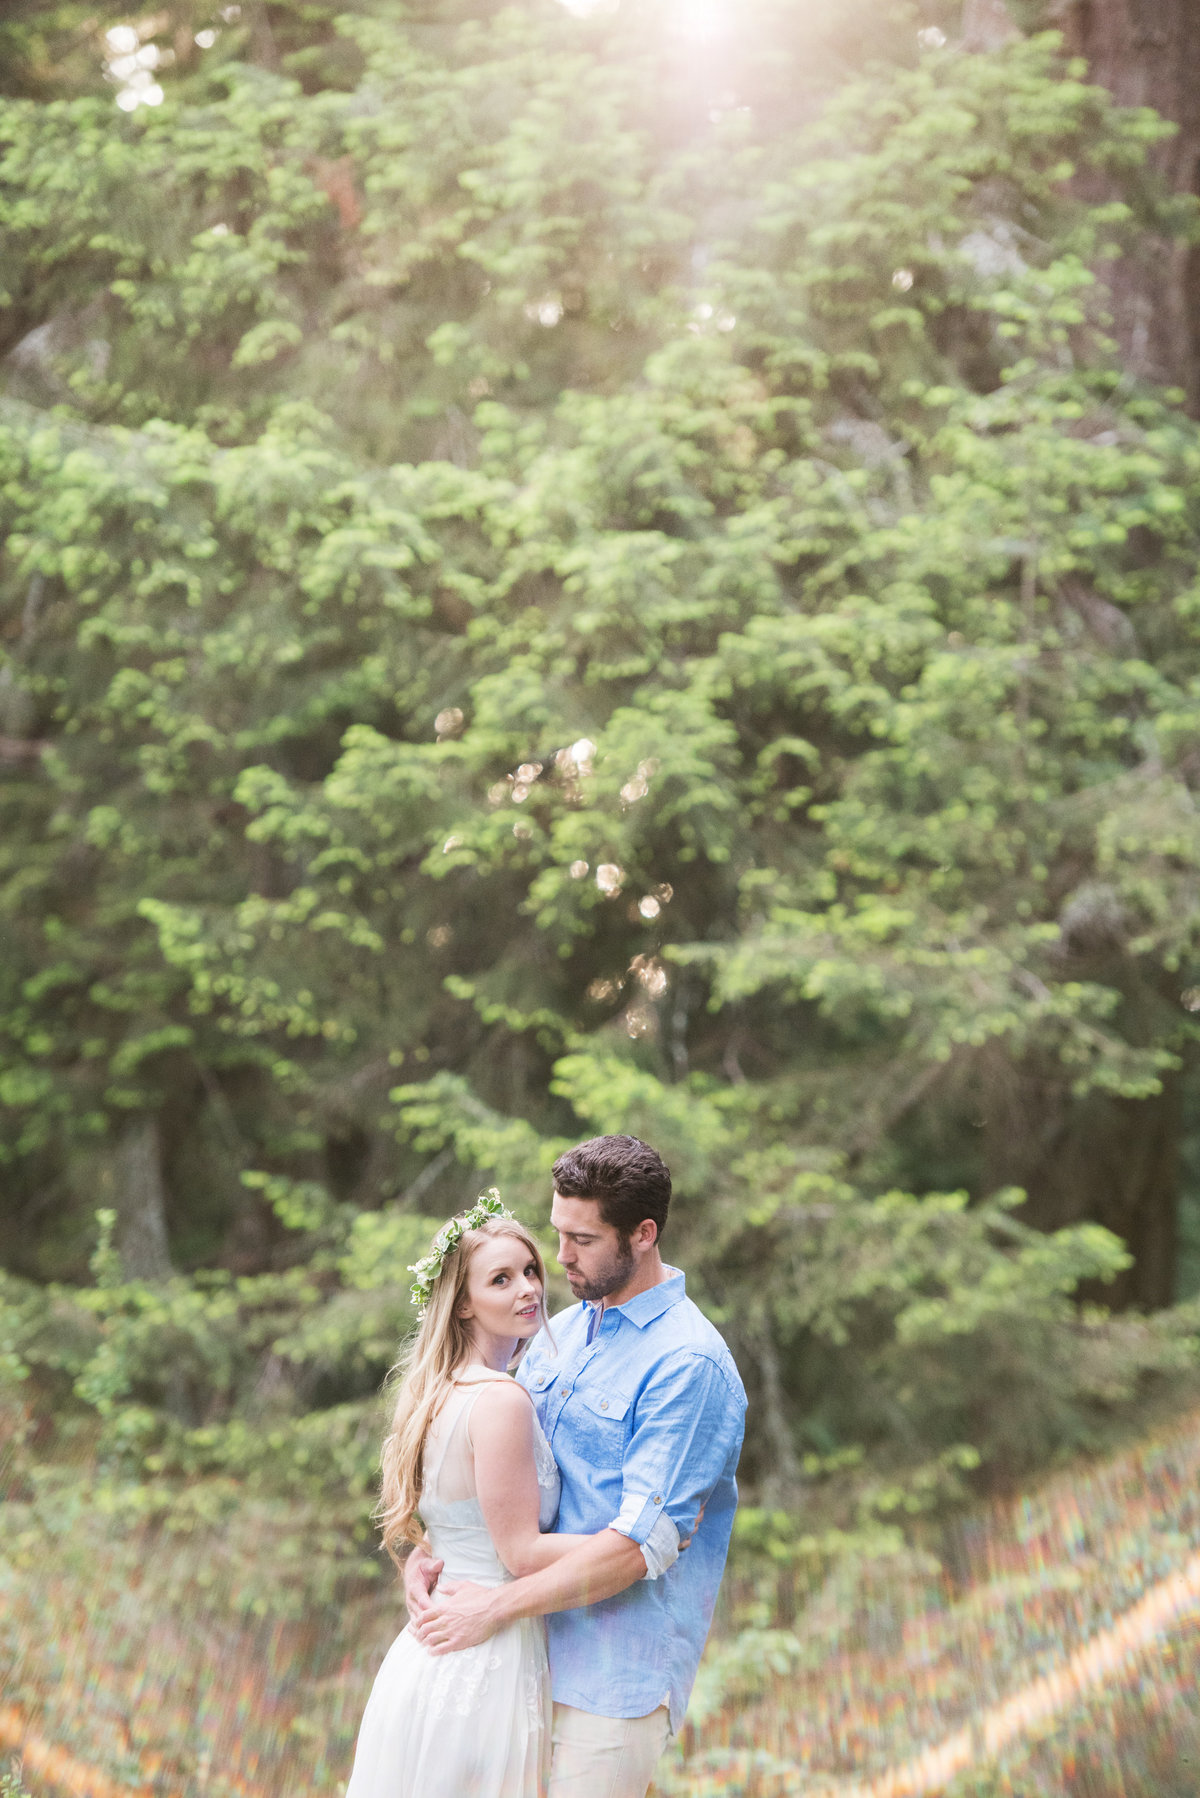 Vancouver and Abbotsford Wedding Photographer Ashley Martens Photography -27